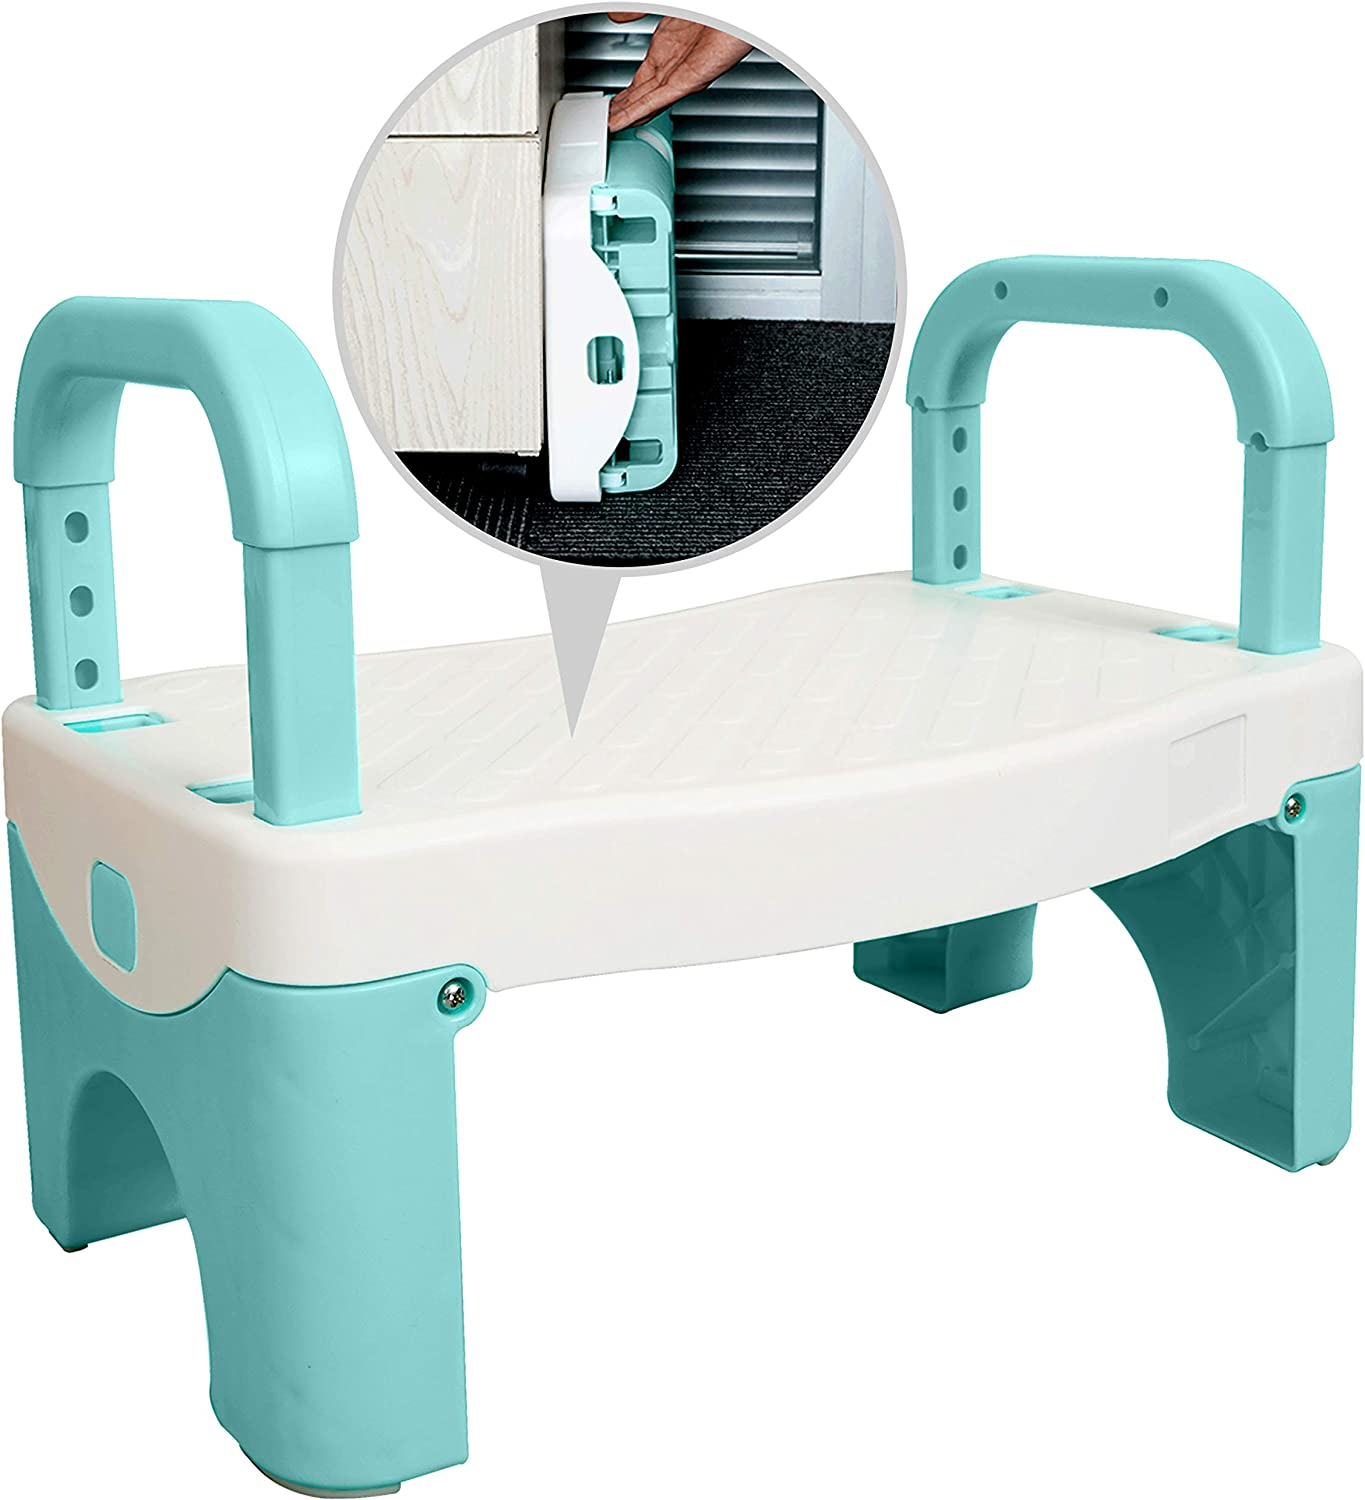 Sturdy Step Stool for Kids 1 Potty Toddlers Training Bathroom Department store Japan Maker New